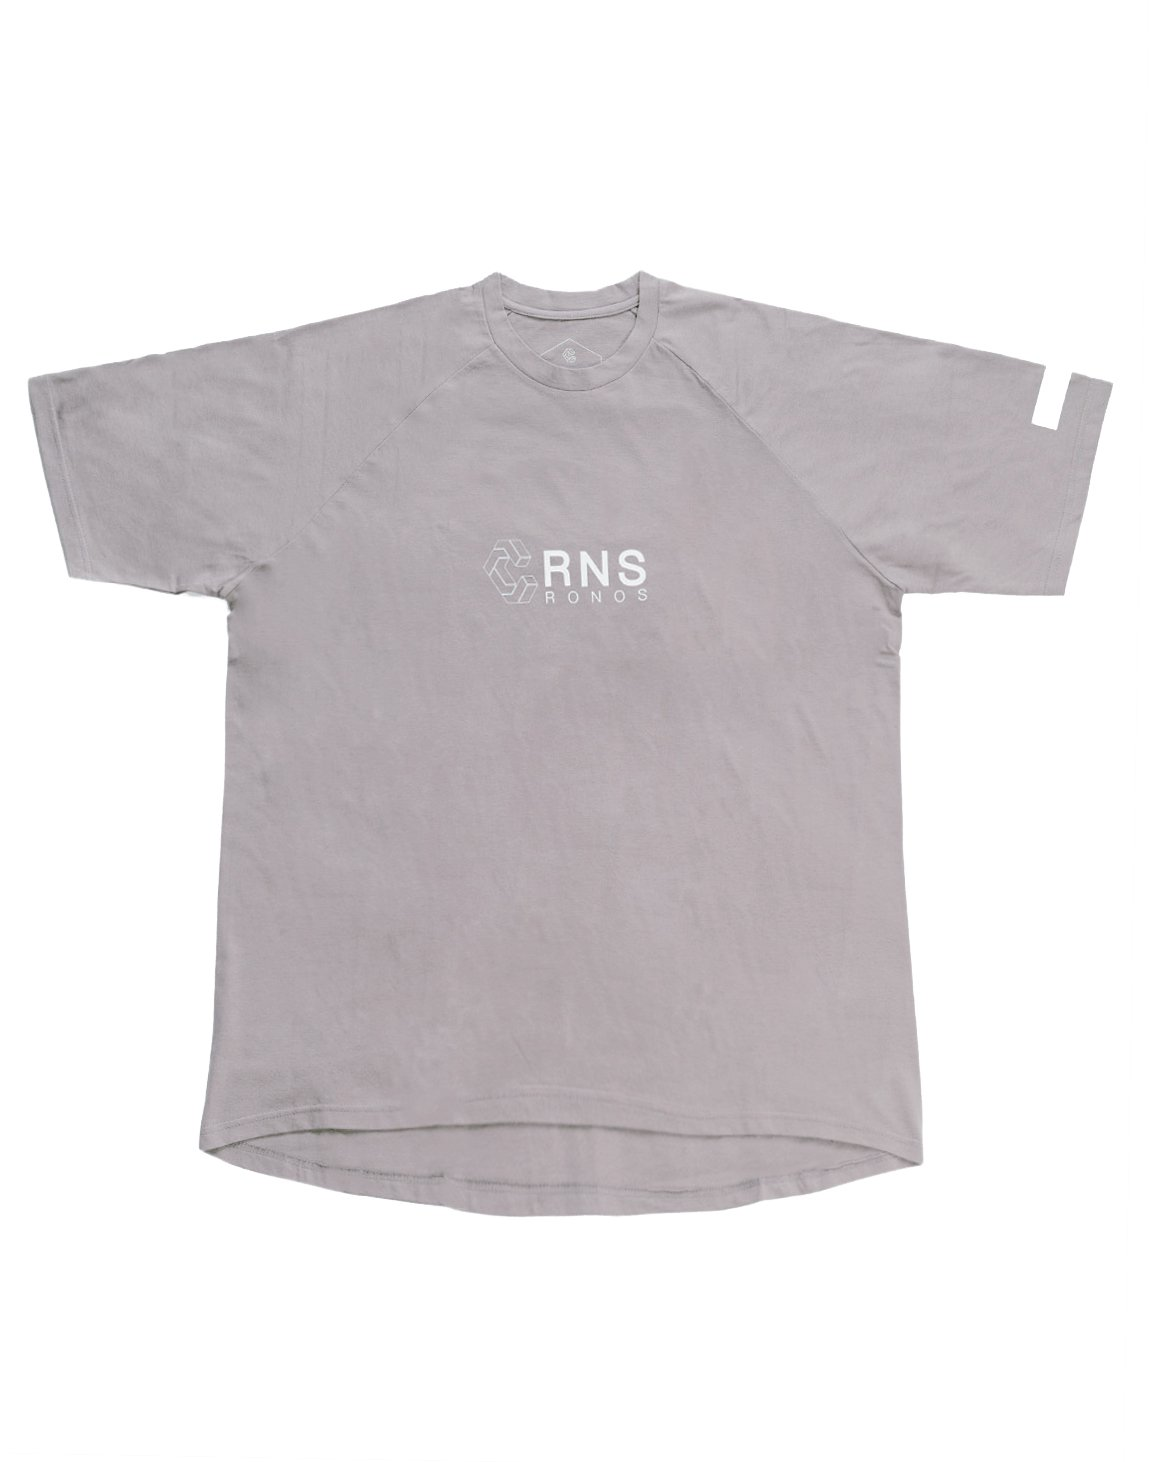 <img class='new_mark_img1' src='https://img.shop-pro.jp/img/new/icons1.gif' style='border:none;display:inline;margin:0px;padding:0px;width:auto;' />CRNS HEM ROUNDNESS T-SHIRTS 【GRAY】